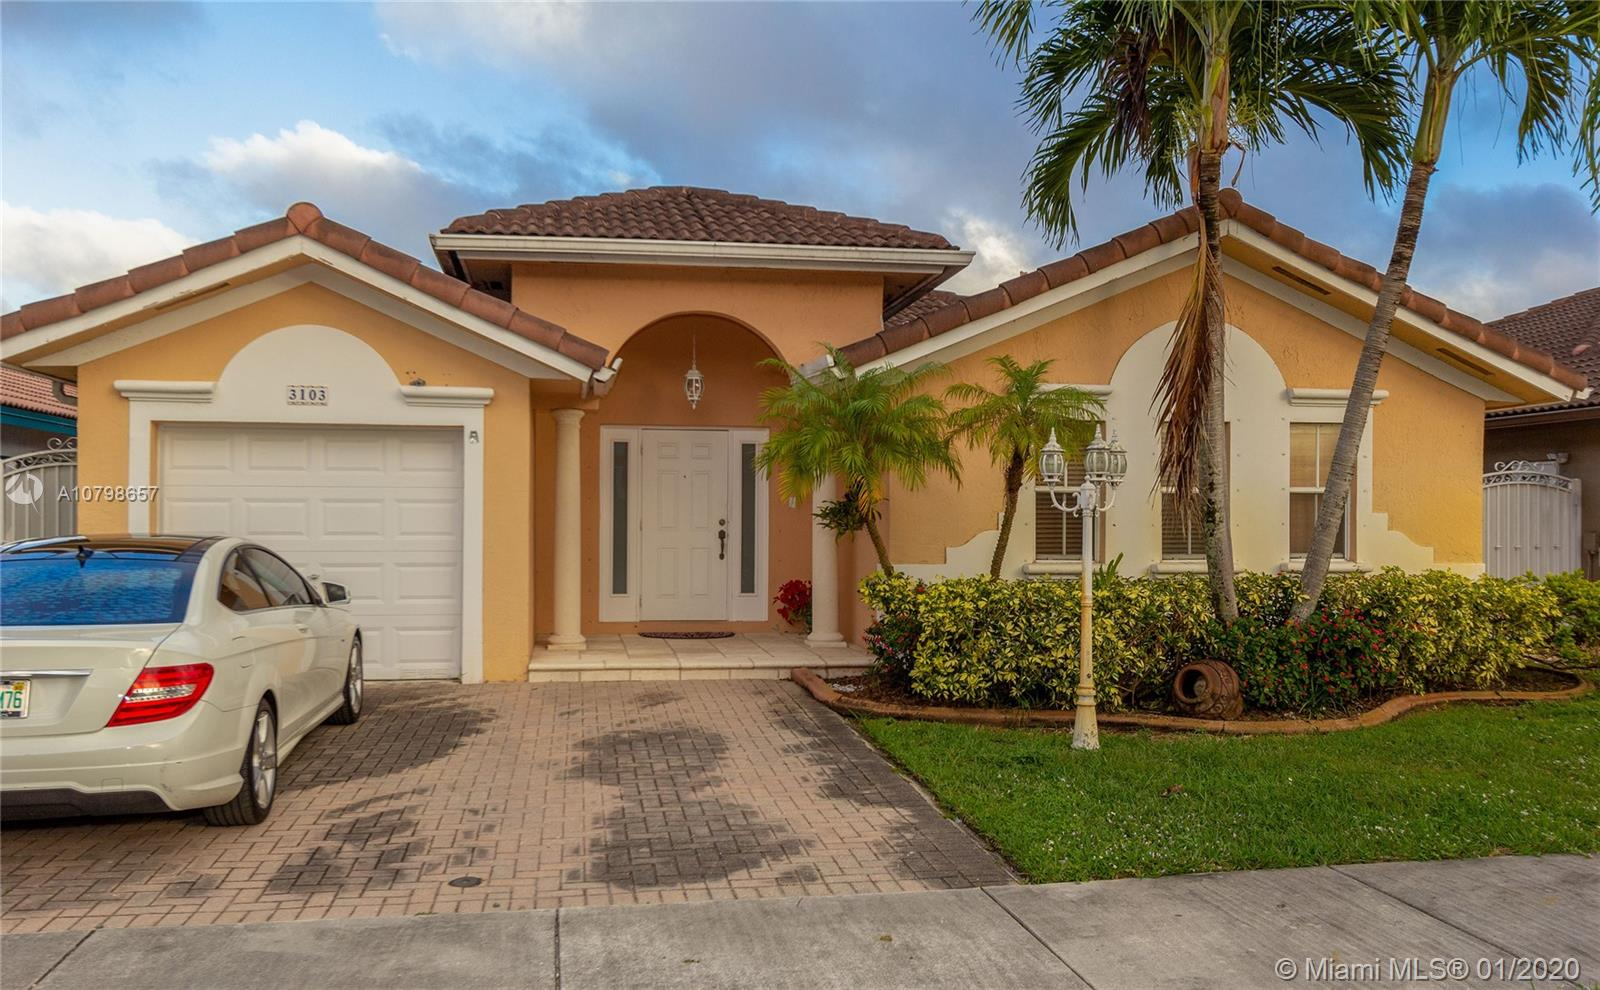 3103 SW 150th Ct, Kendall in Miami-dade County County, FL 33185 Home for Sale